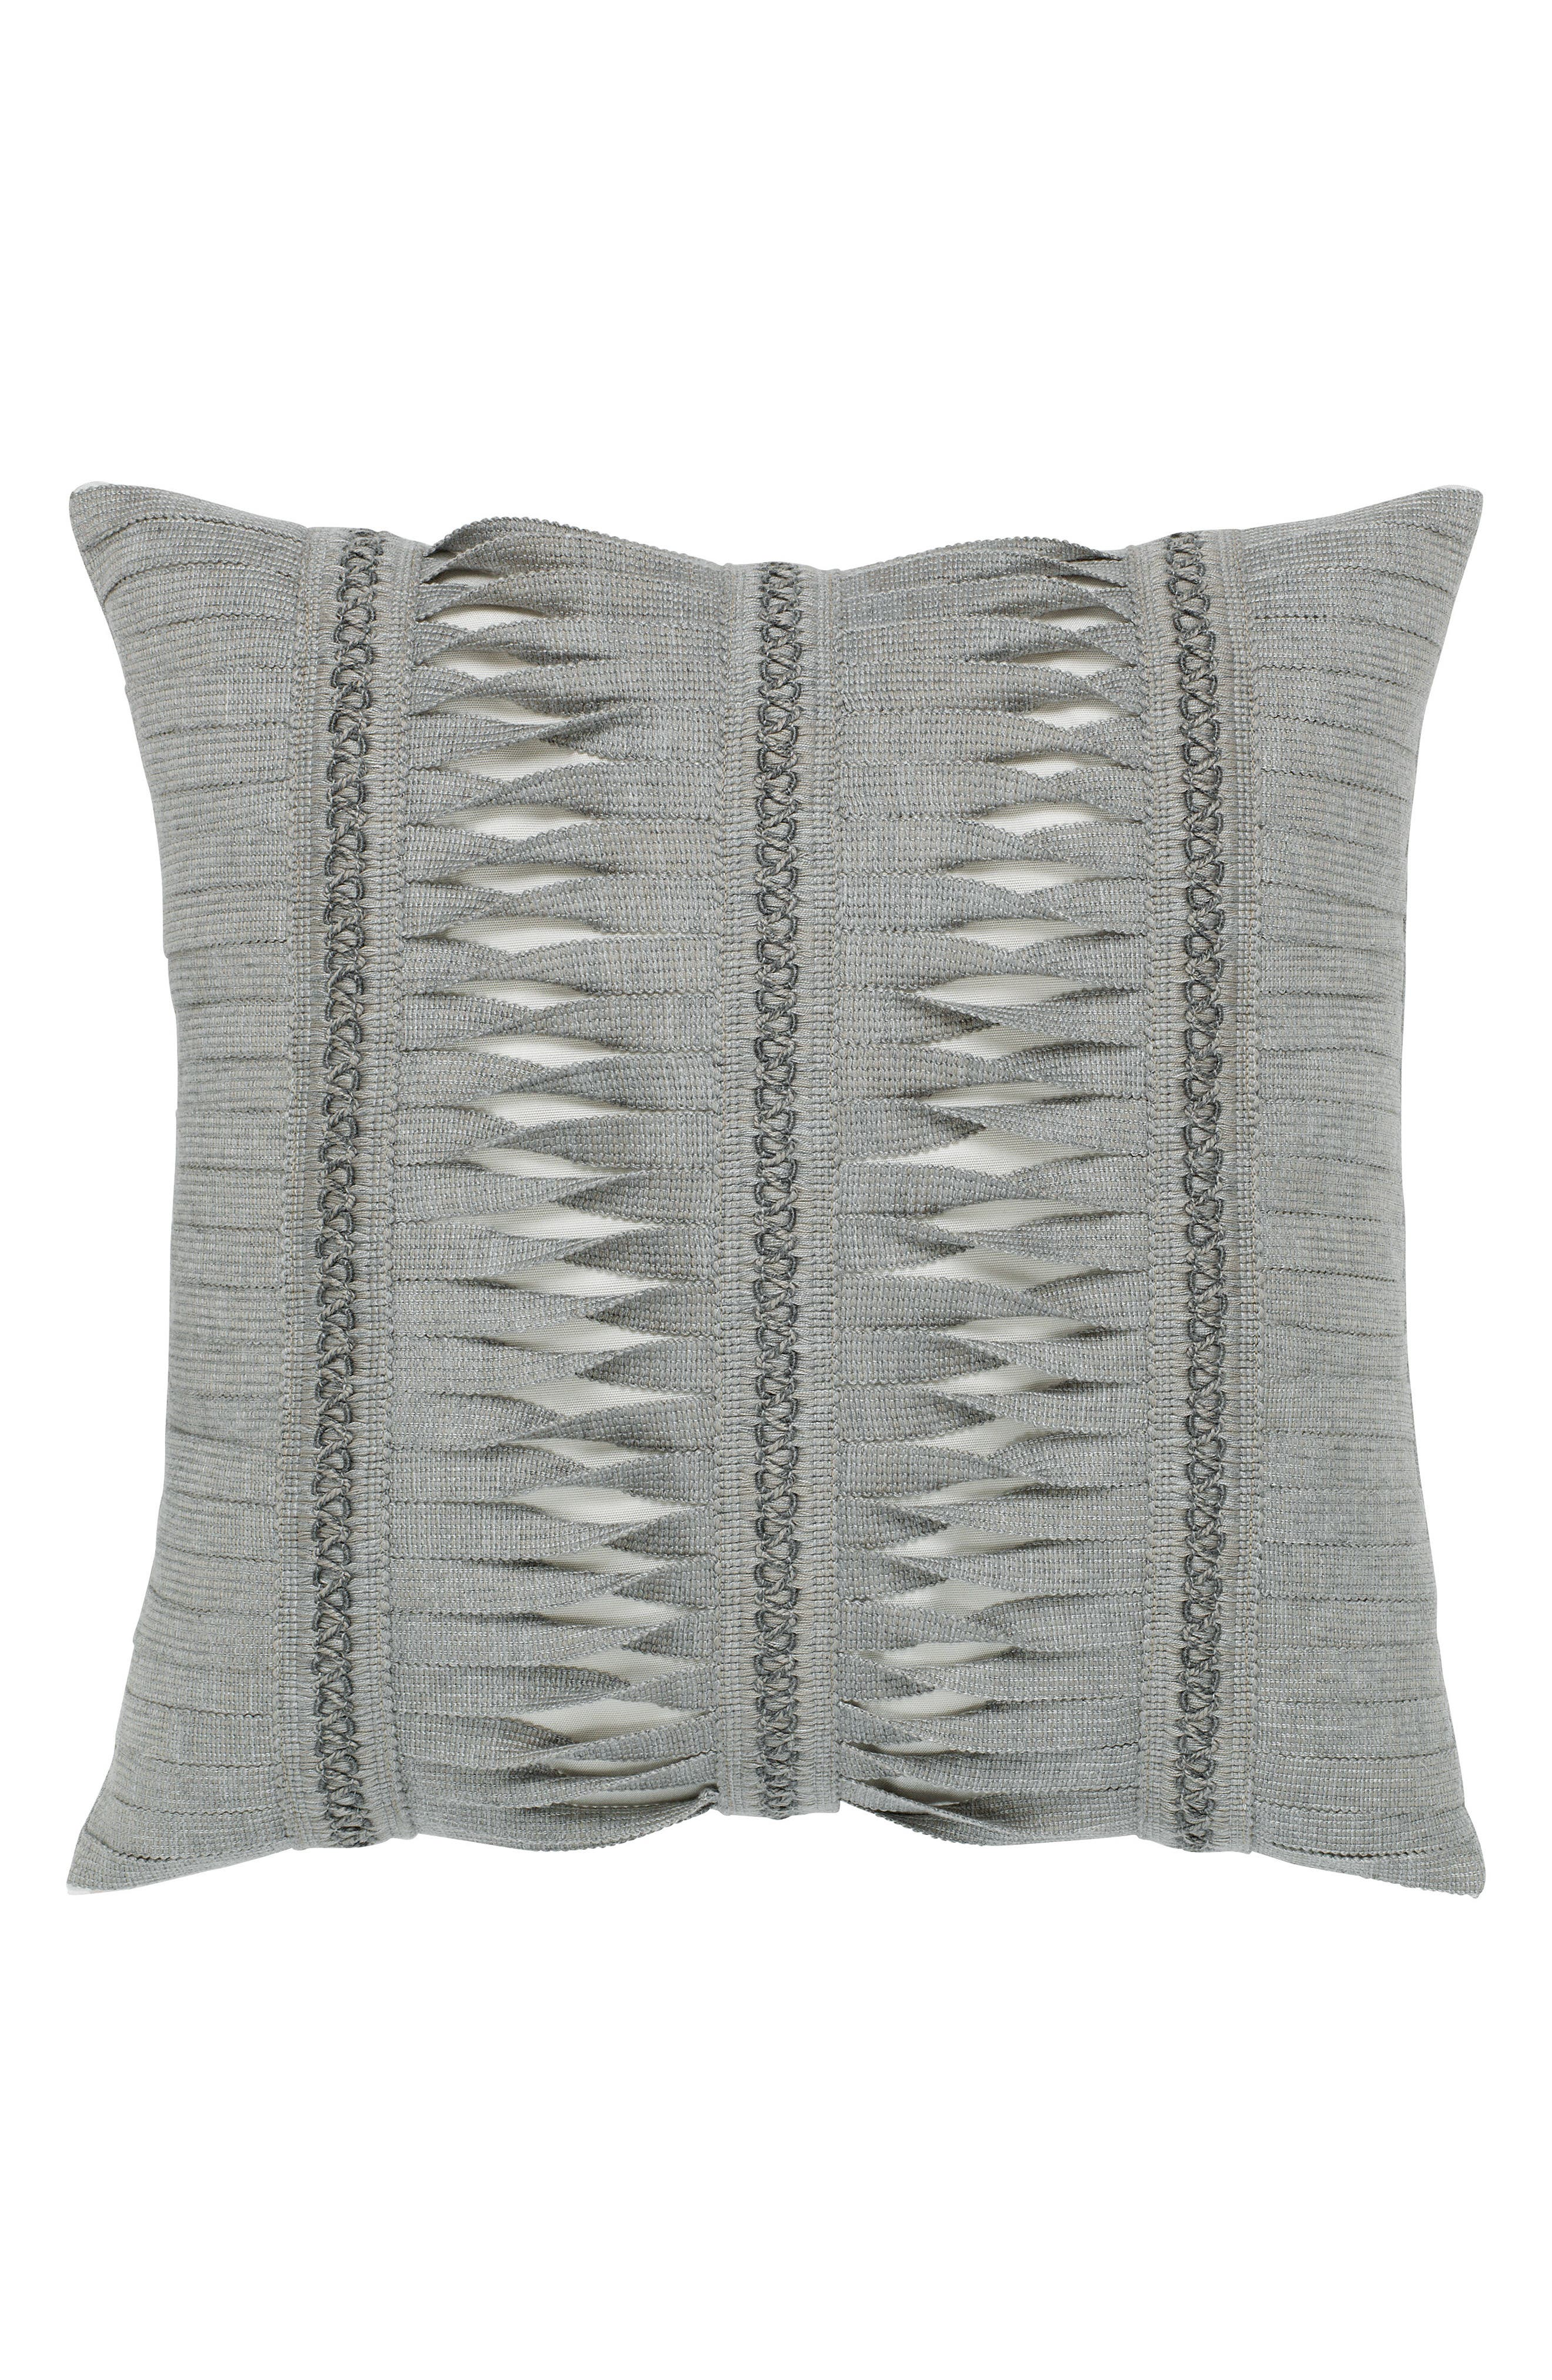 Gladiator Granite Indoor/Outdoor Accent Pillow,                             Main thumbnail 1, color,                             Grey